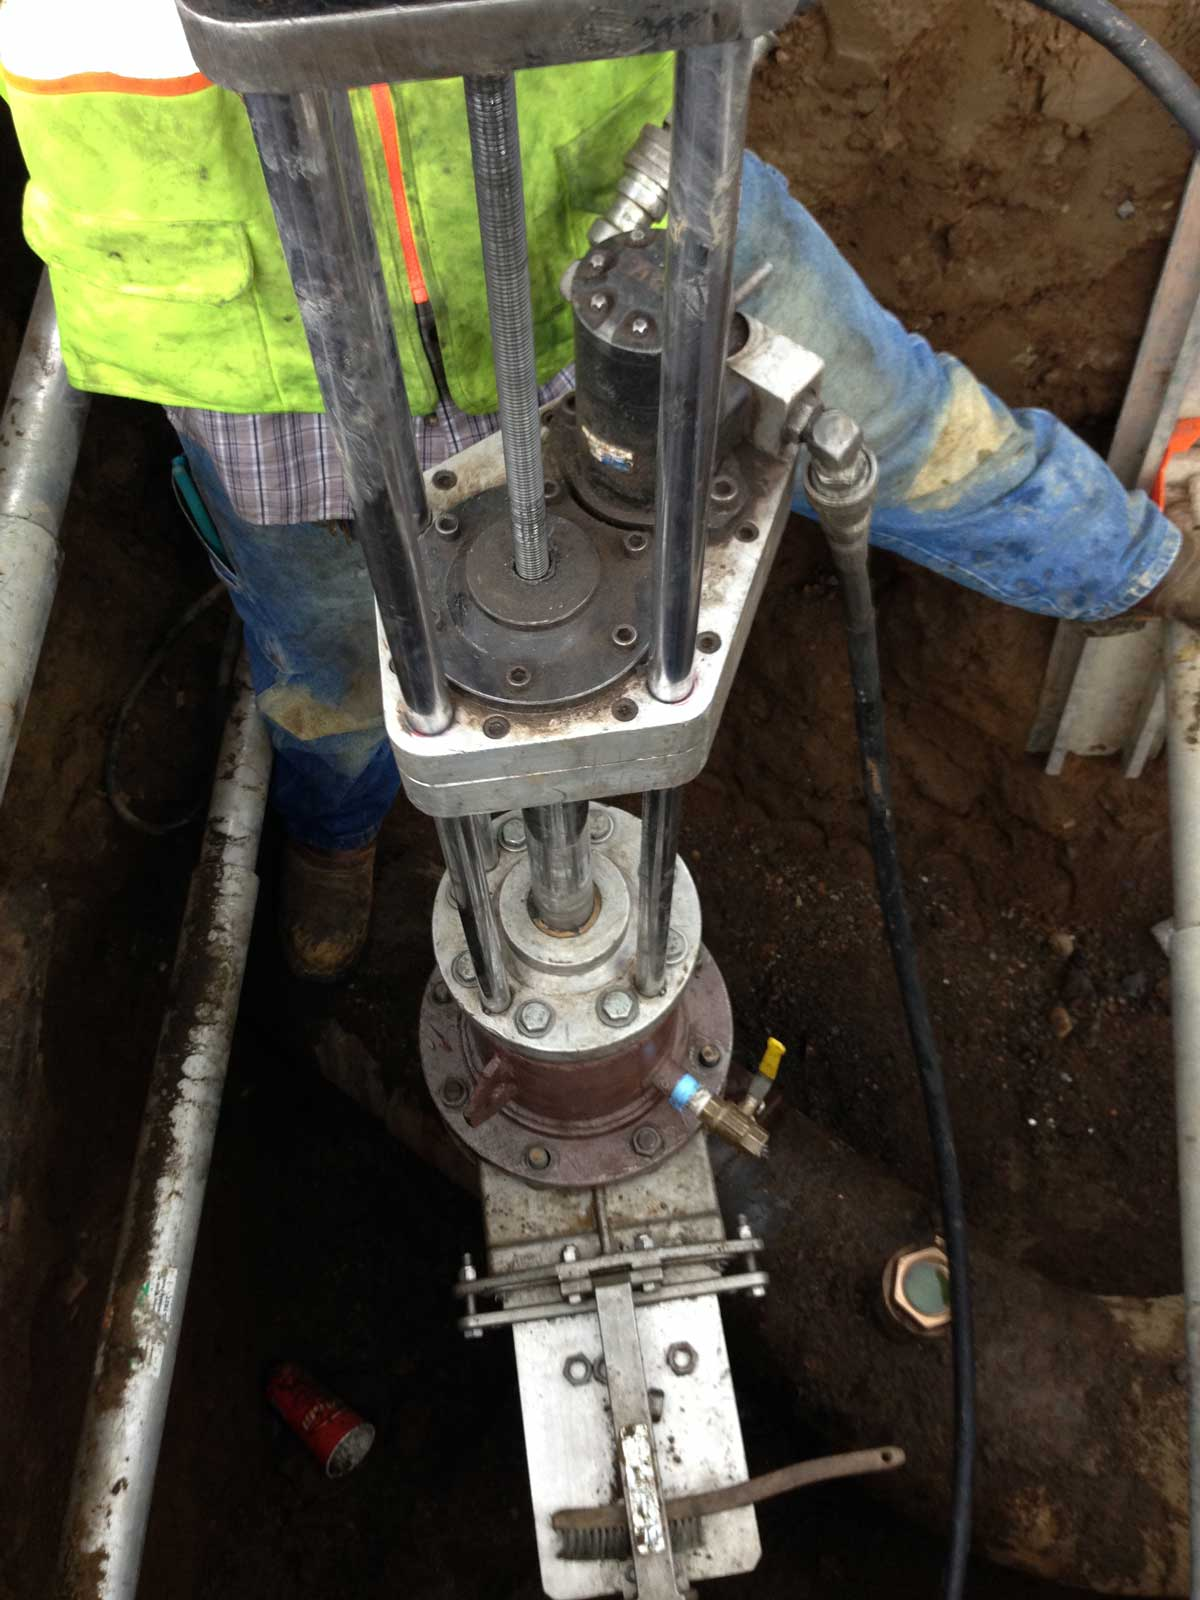 8 Inch Hottap for a 12 inch Linestop